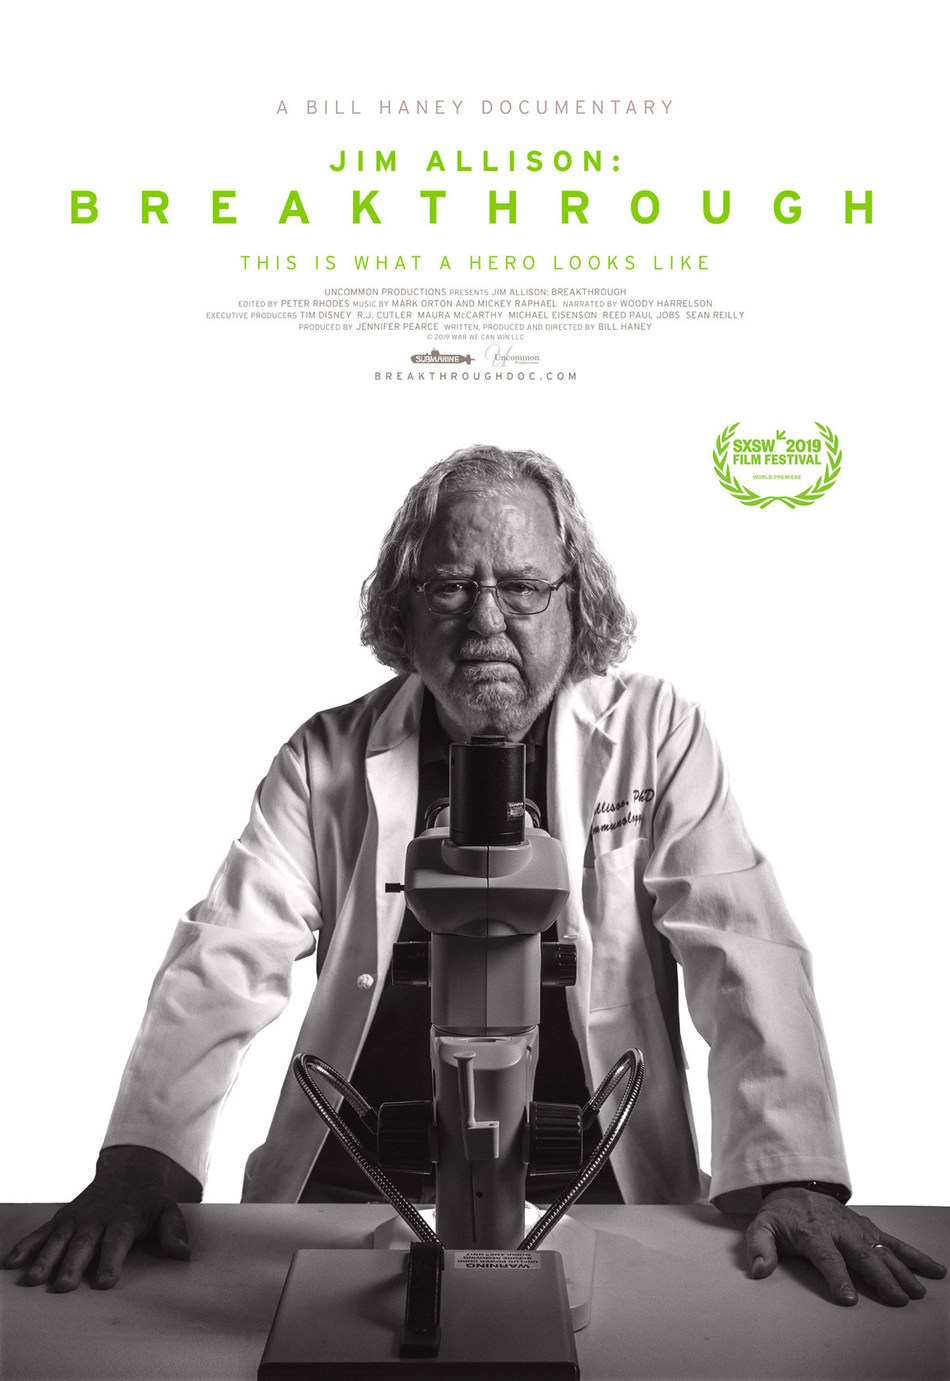 Jim Allison: Breakthrough documentary film poster